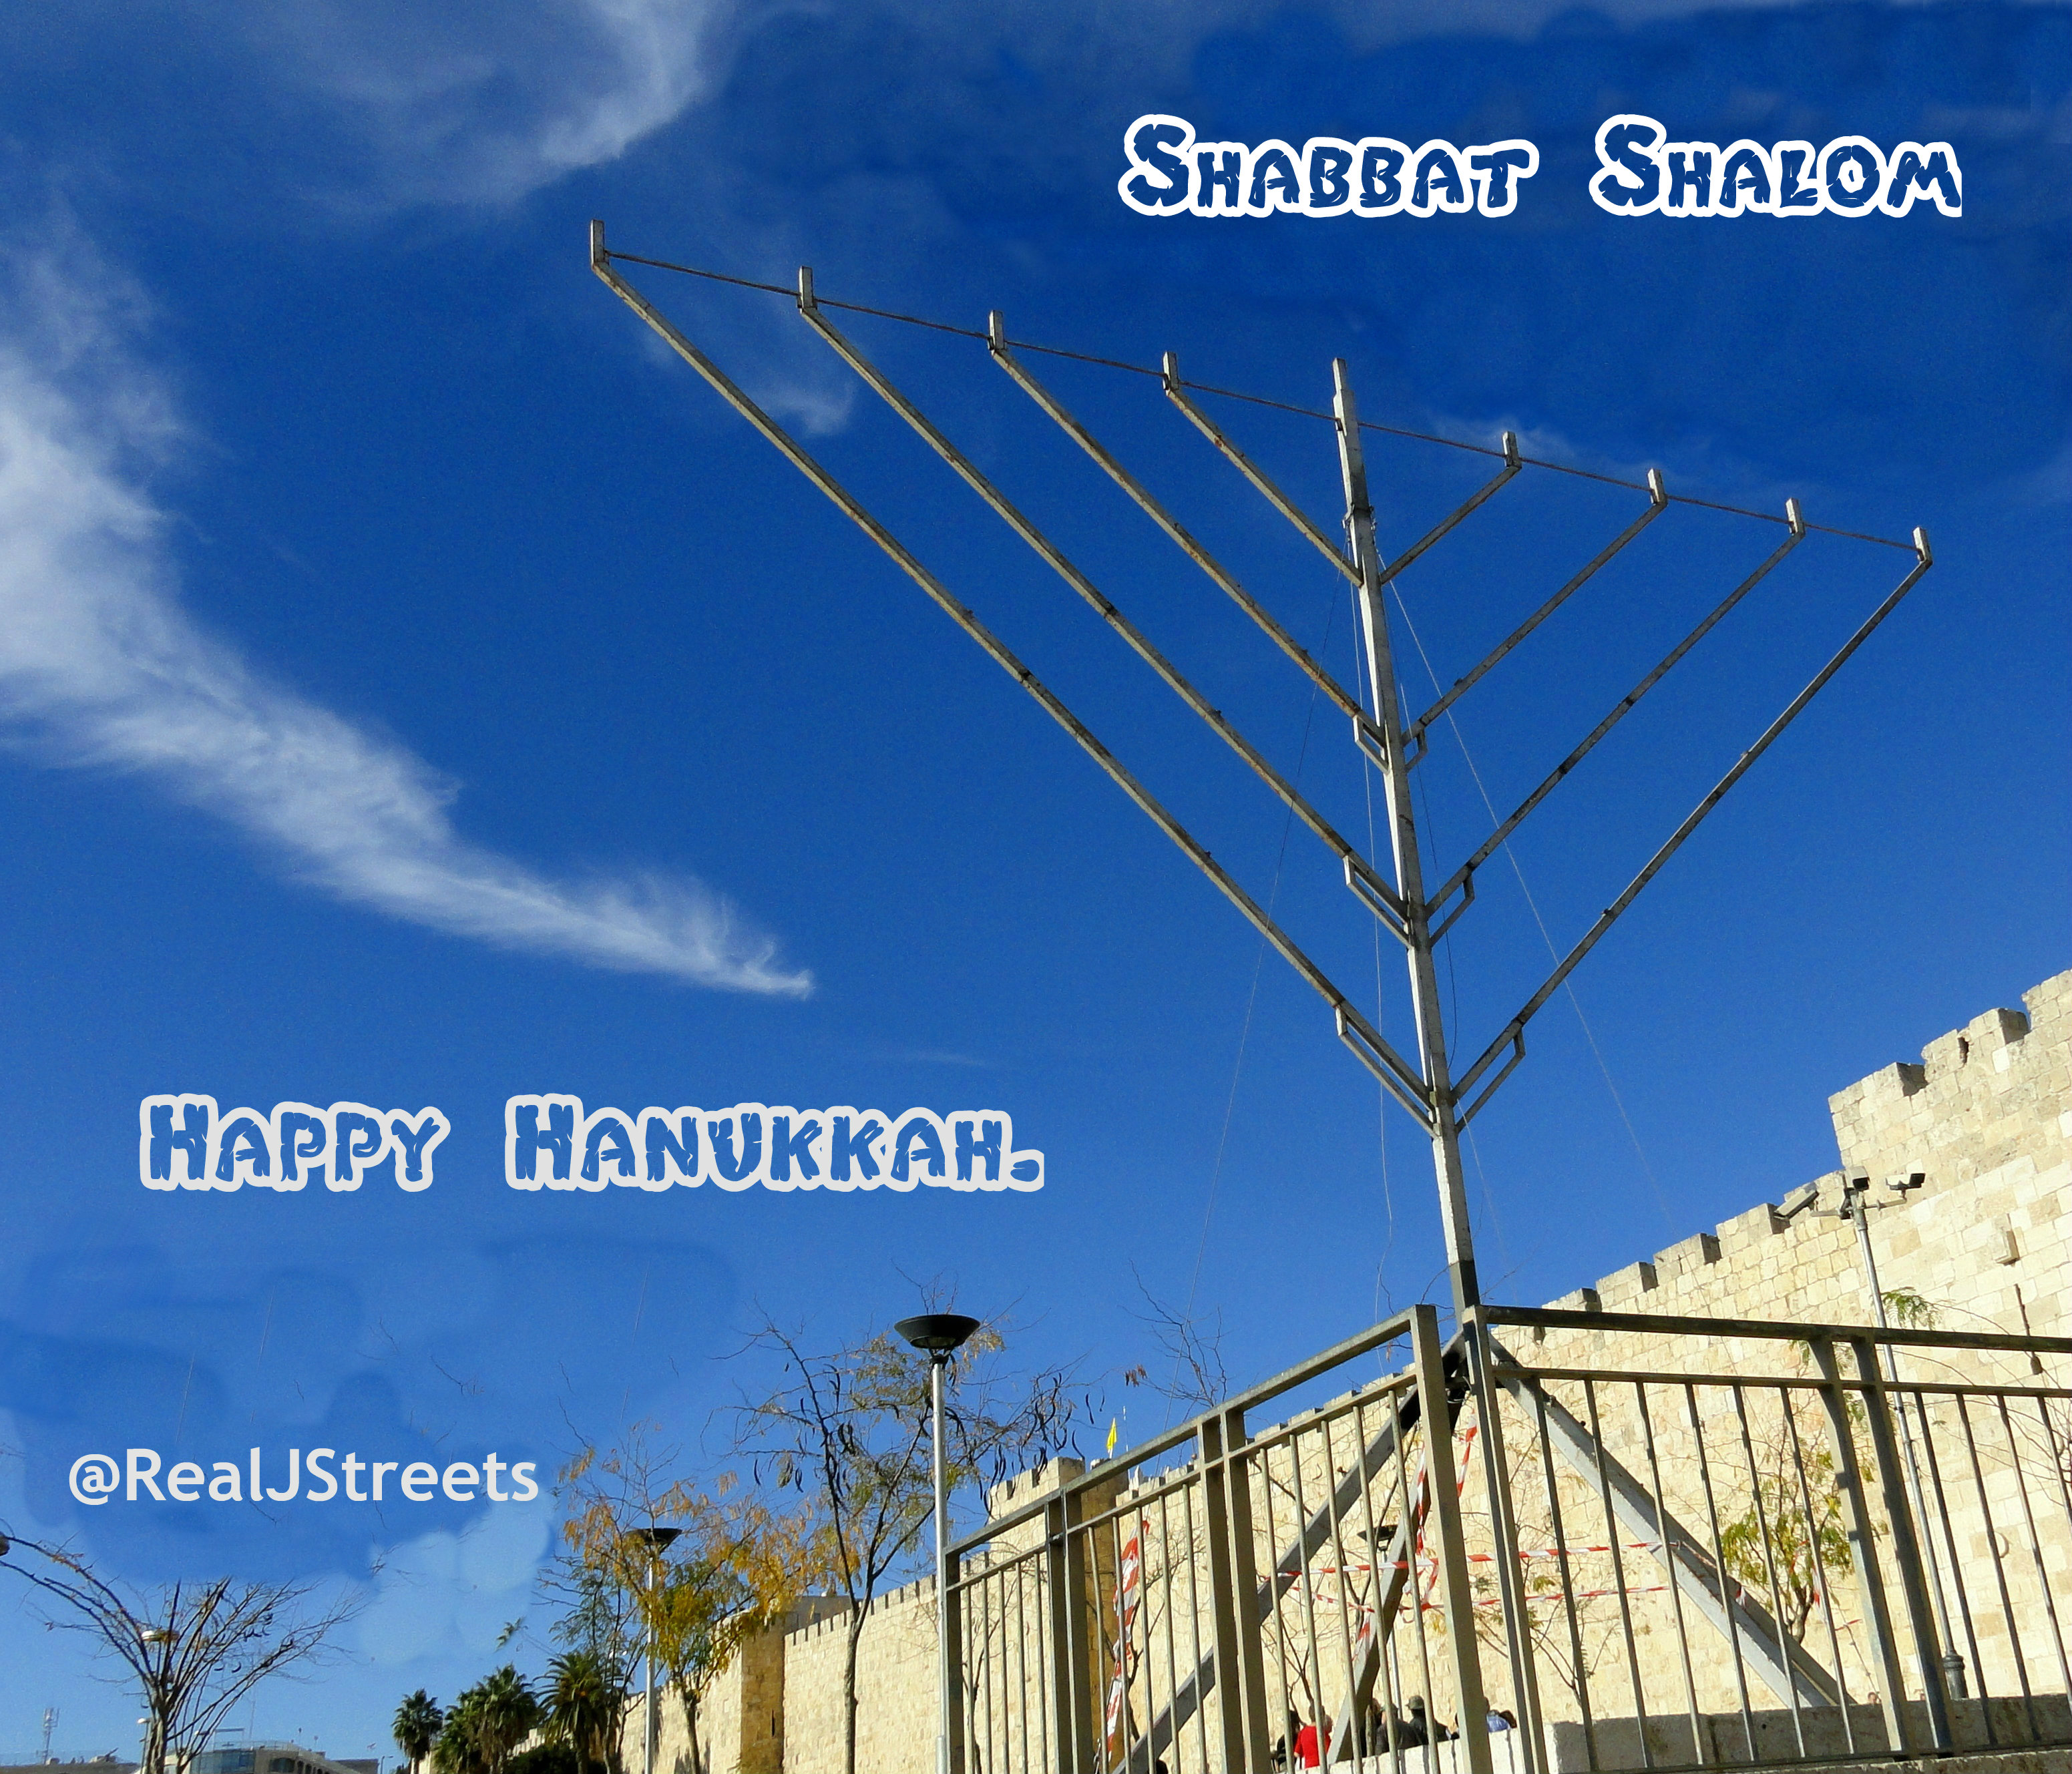 sign Shabat shalom and Hanukkah, photo large chanukiah at Jaffa Gate, picture large menorah